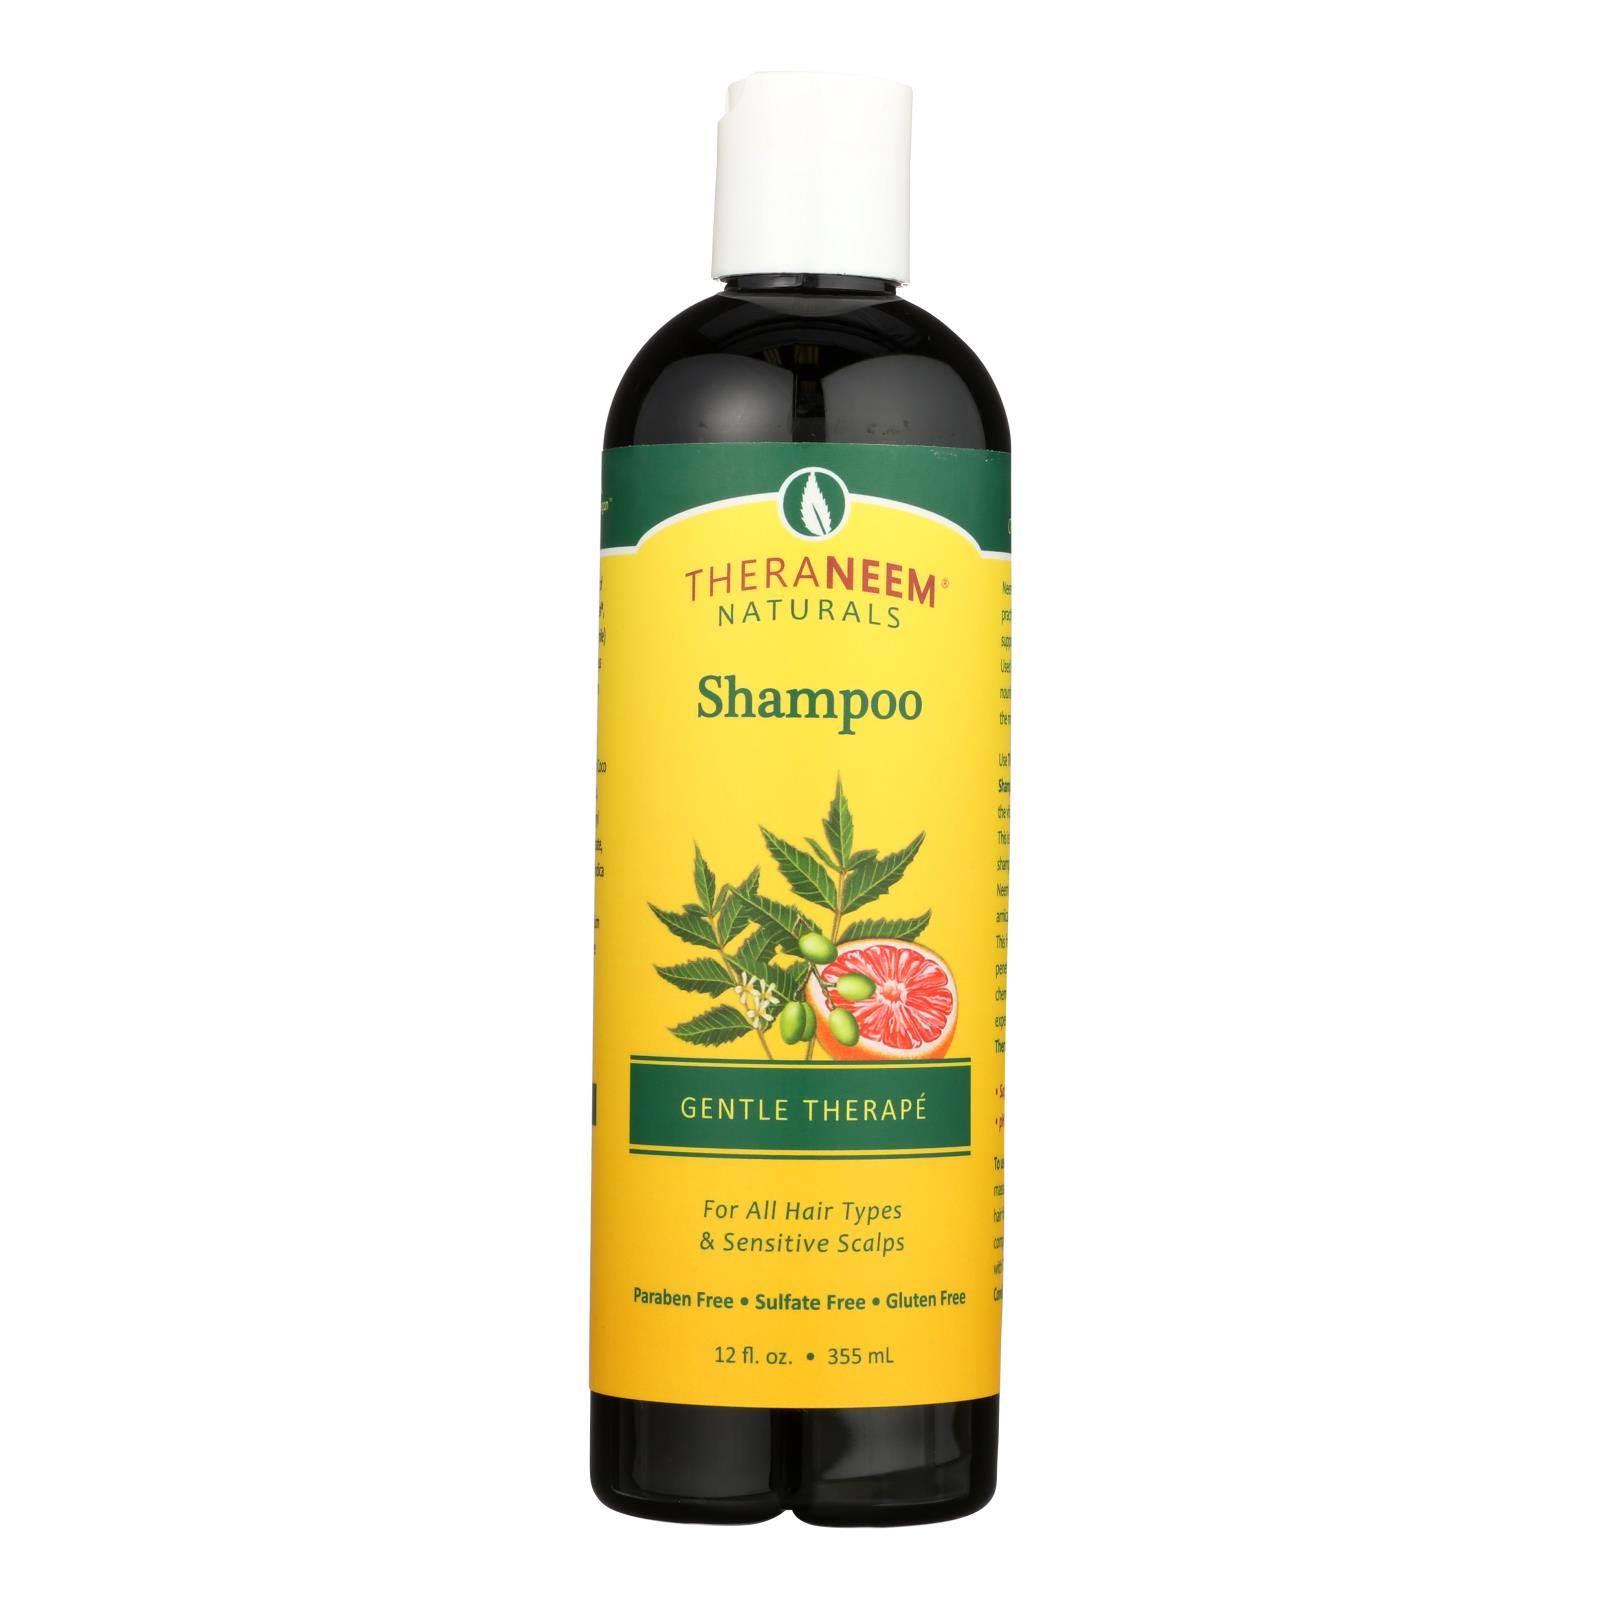 TheraNeem Organix Shampoo - Gentle Therape